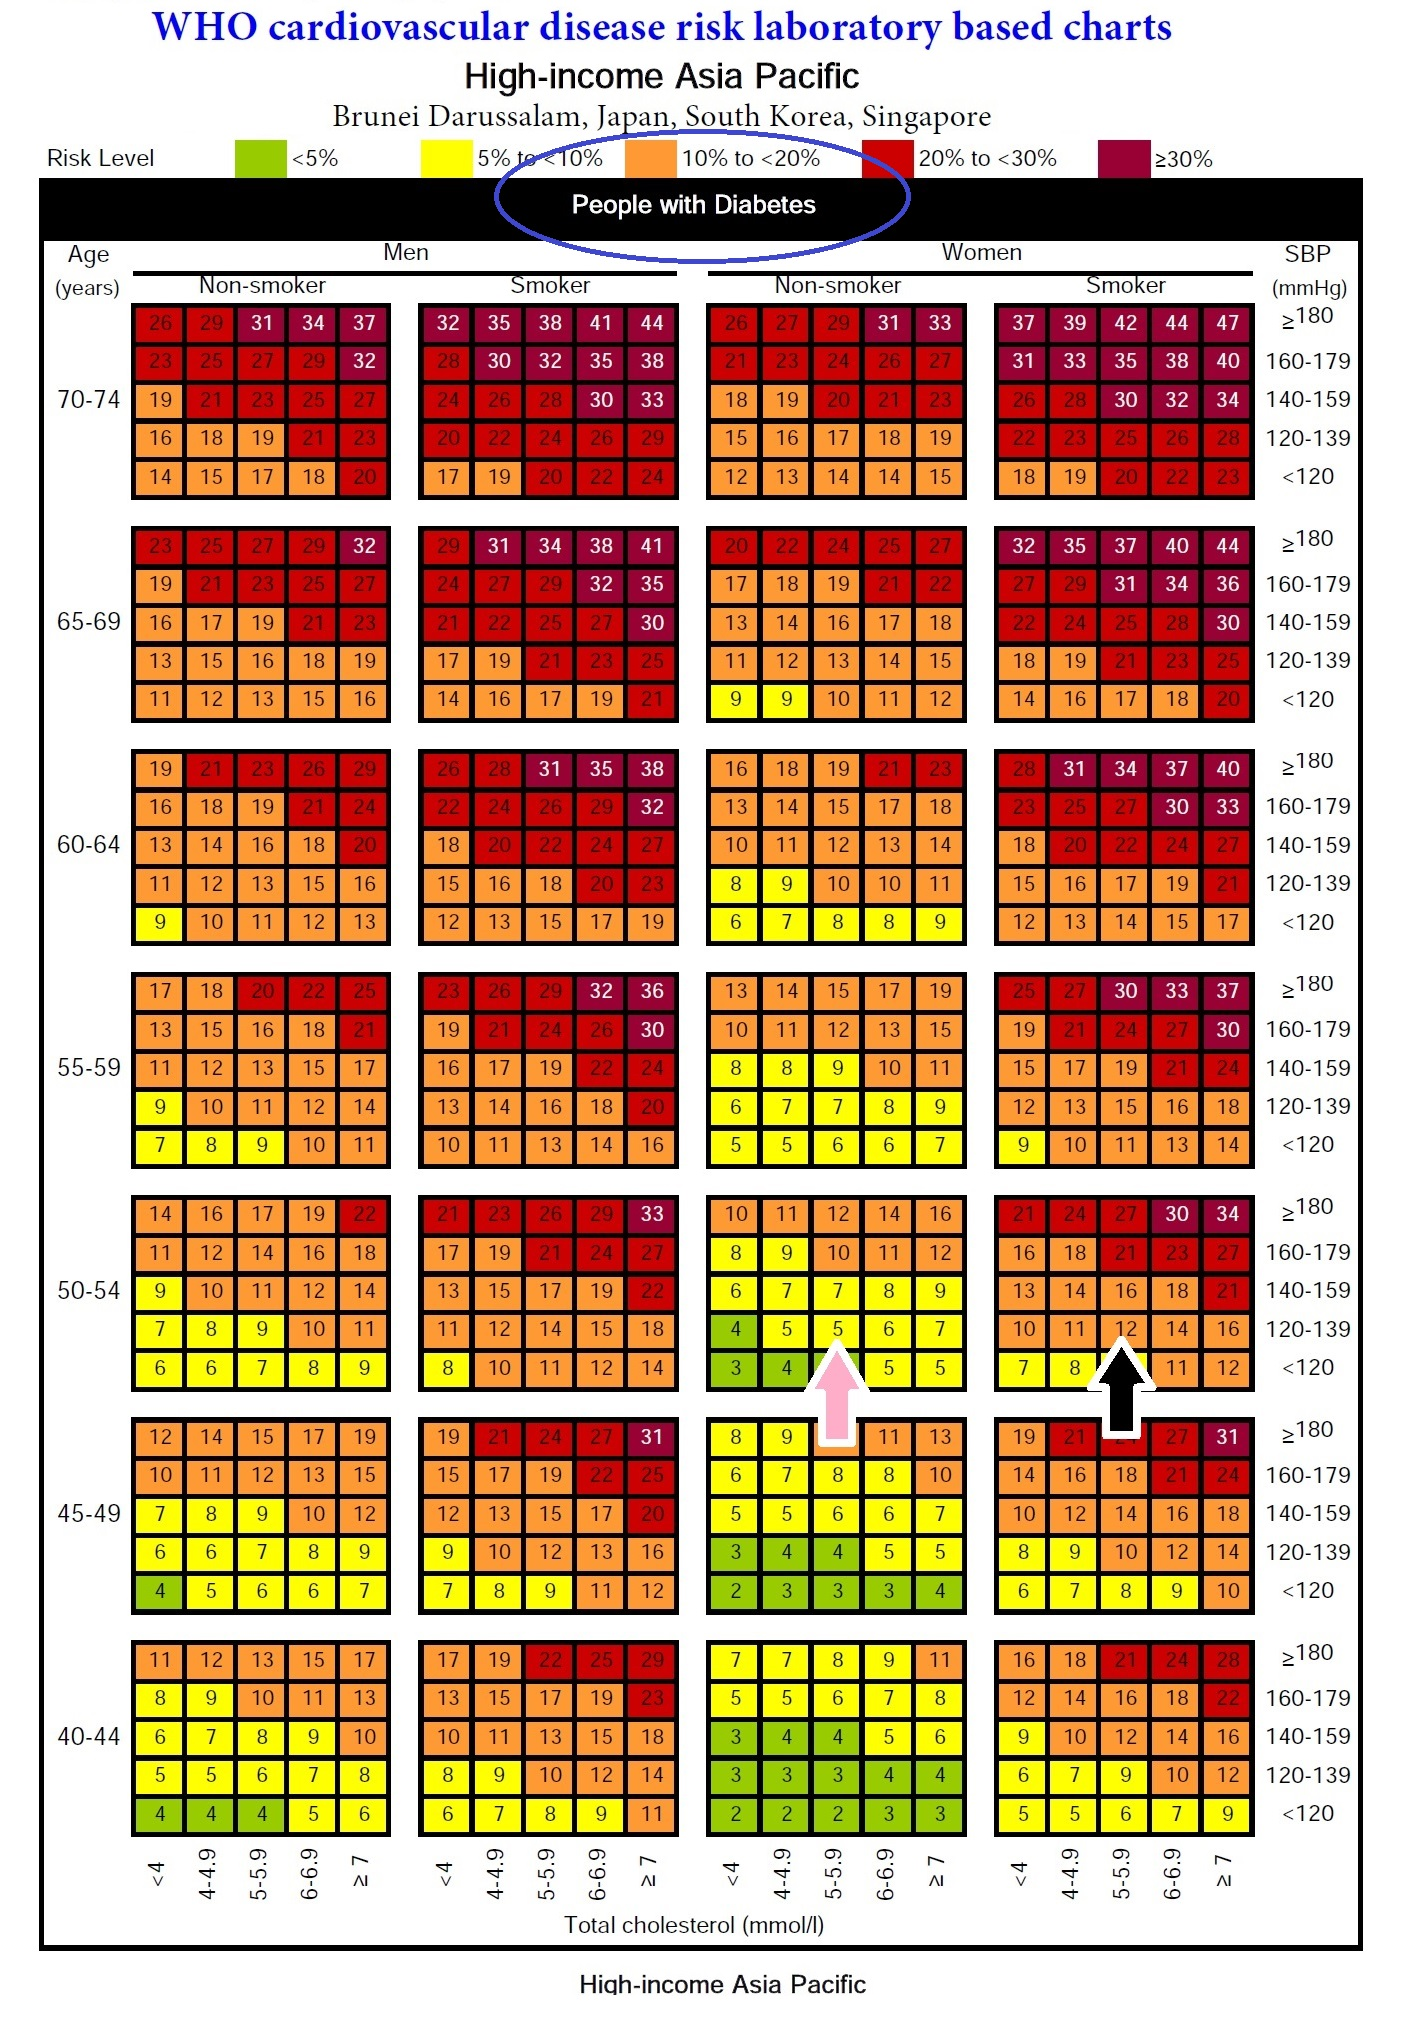 Image - Madam Lee risk level based on WHO prediction chart for people with type 2 diabetes